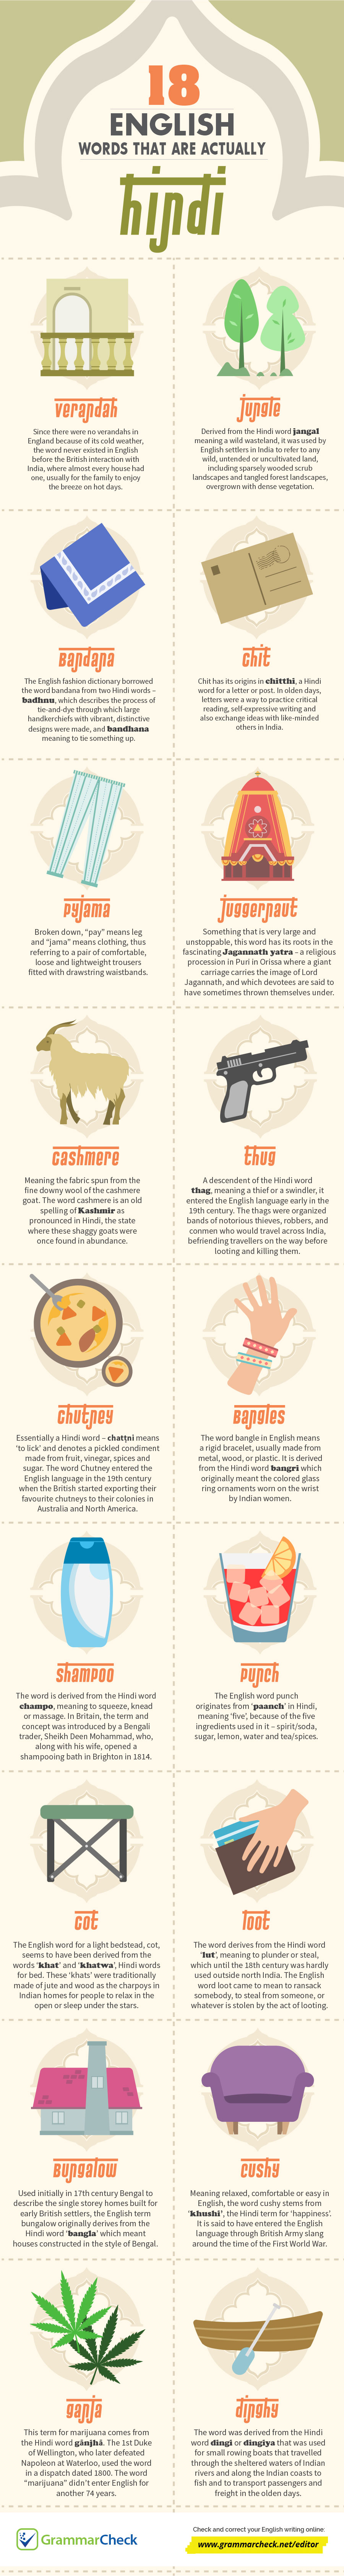 18 English Words That Are Actually Hindi (Infographic)